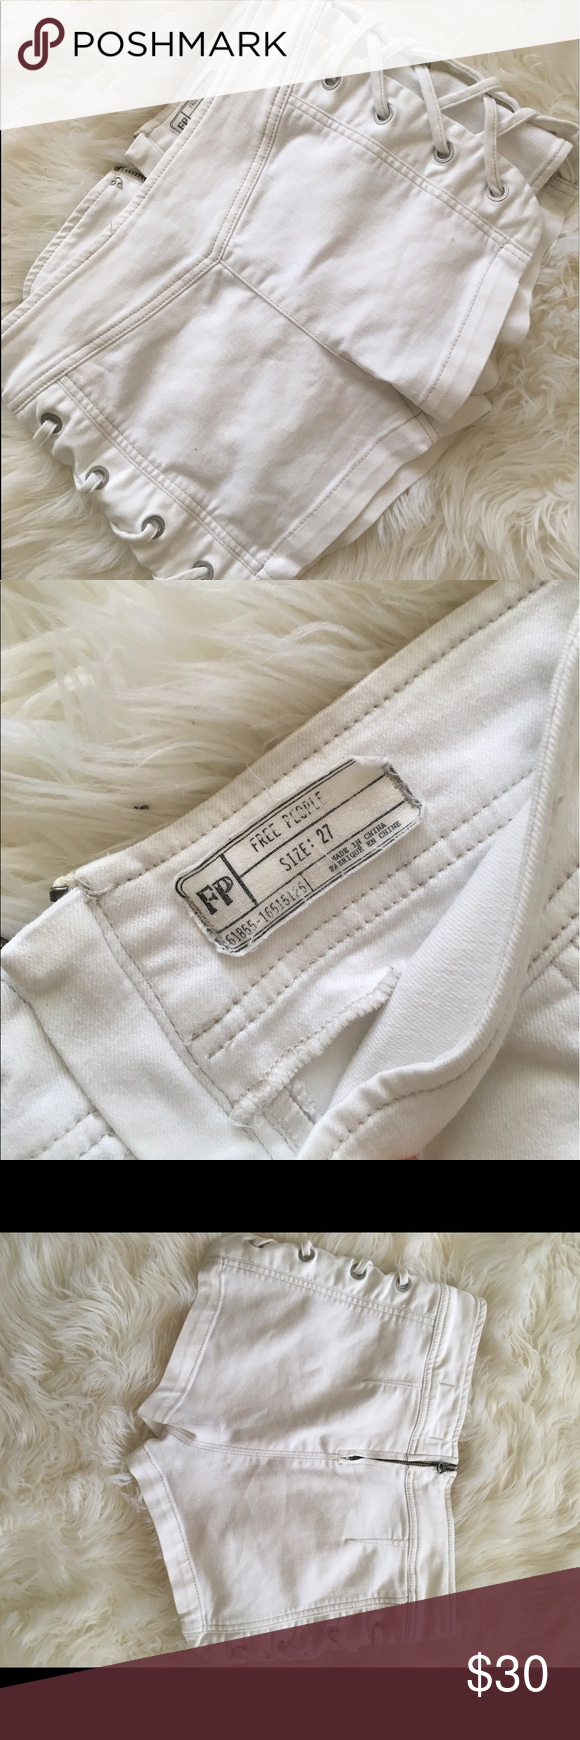 Free people shorts Perfect condition. Fits 27/small Free People Shorts